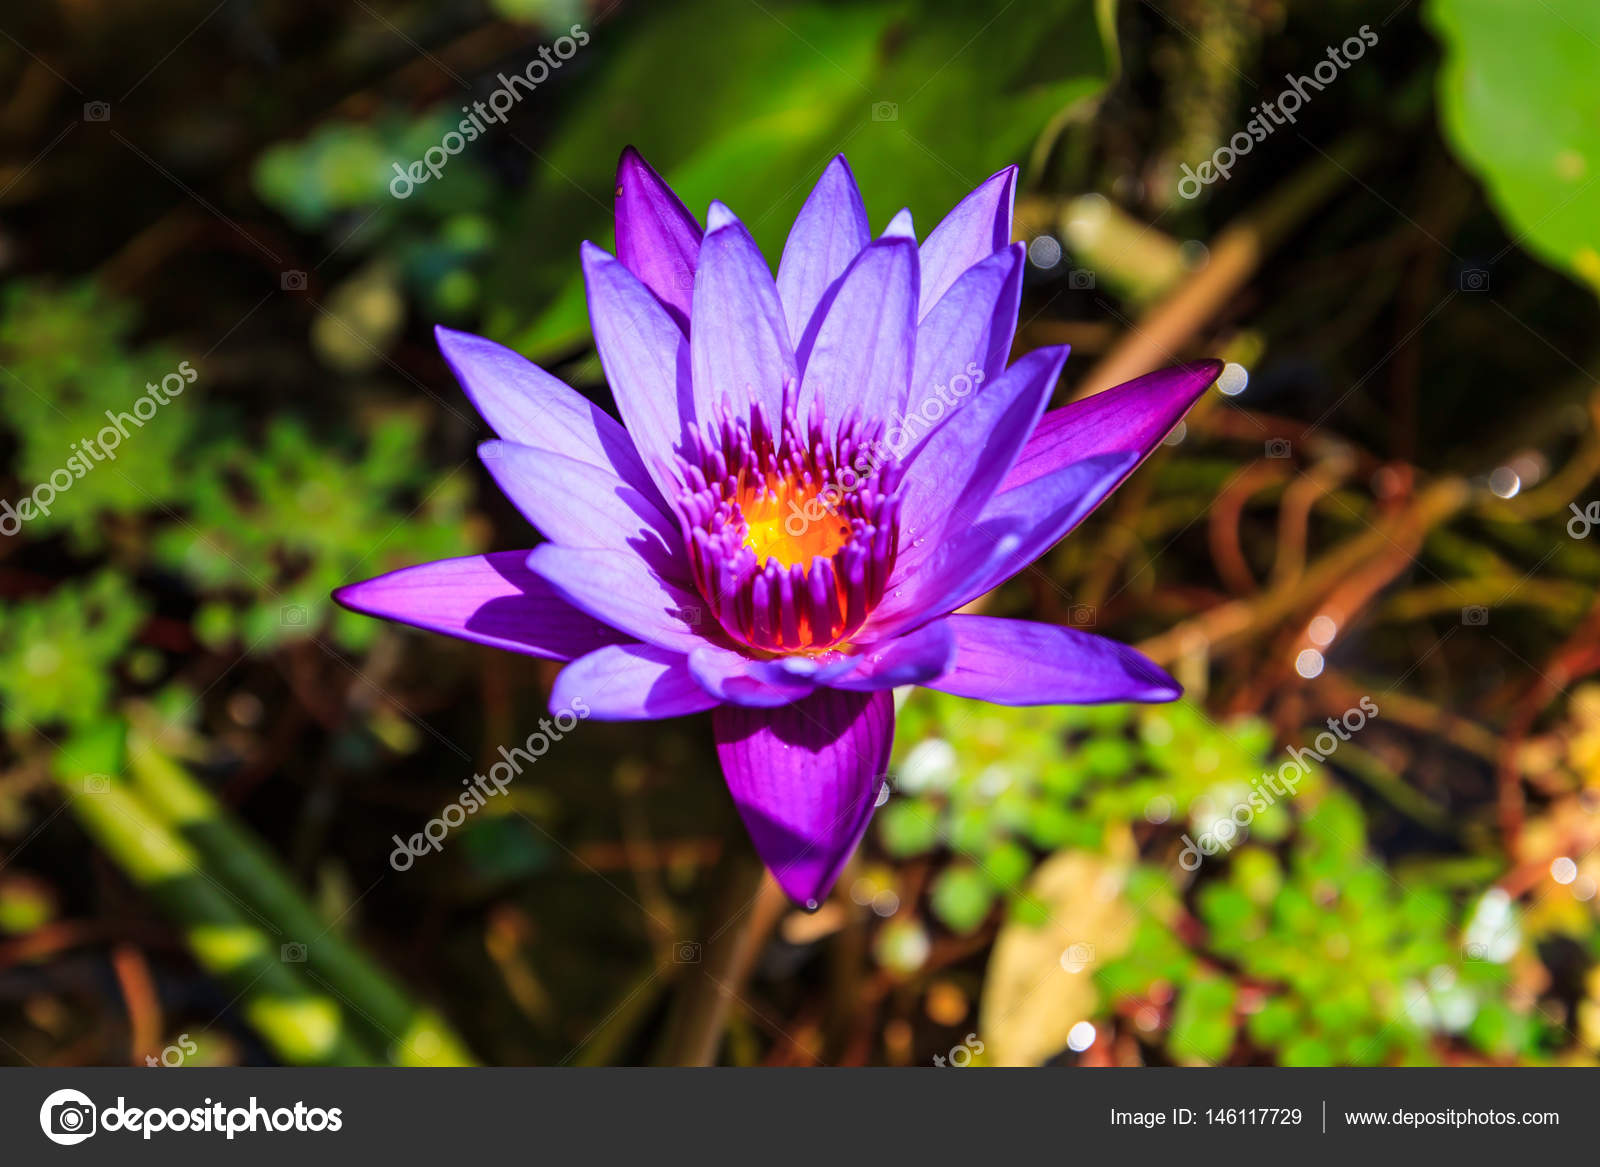 Top view magenta lotus flower in the garden stock photo top view magenta lotus flower in the garden stock photo izmirmasajfo